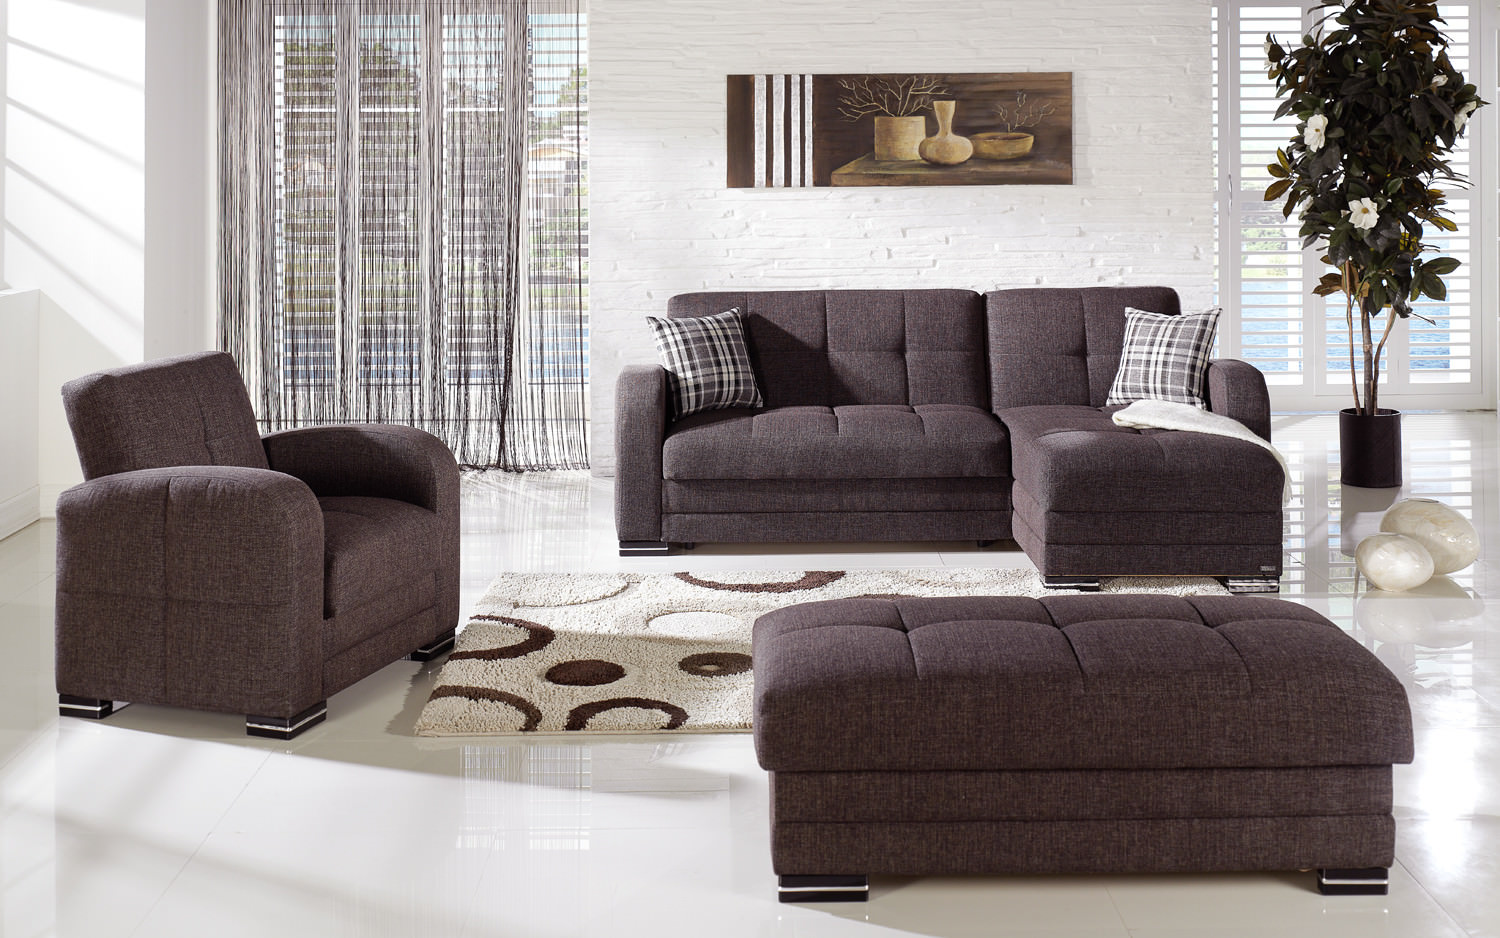 Kubo Andre Dark Brown Sectional Sofa By Istikbal Furniture